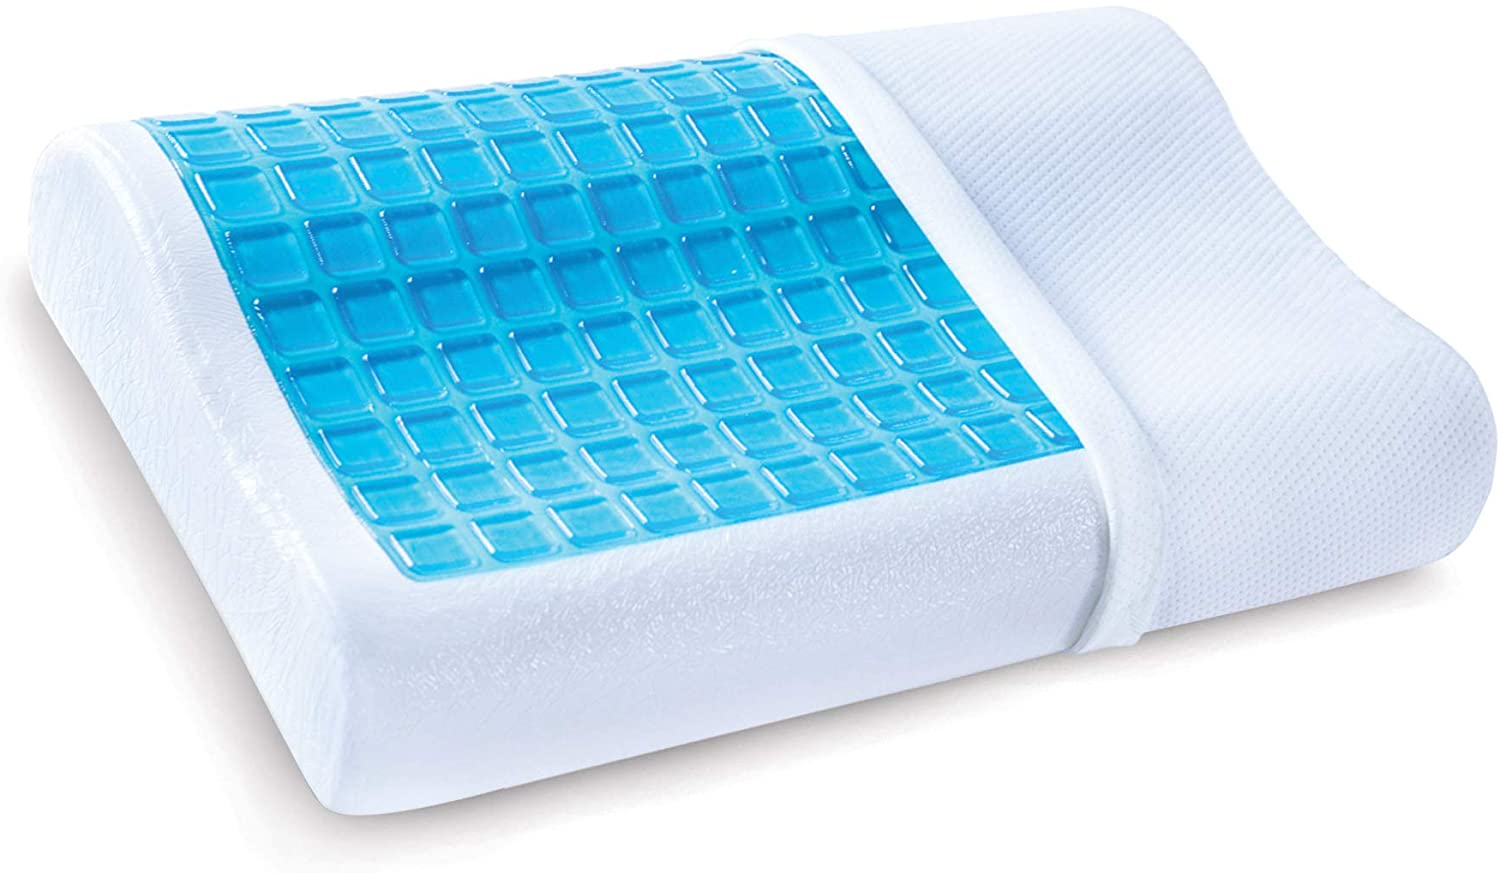 PharMeDoc Memory Foam Pillow with Cooling Gel Orthopedic Bed Pillow Includes Removable Pillow Cover, Contour Design